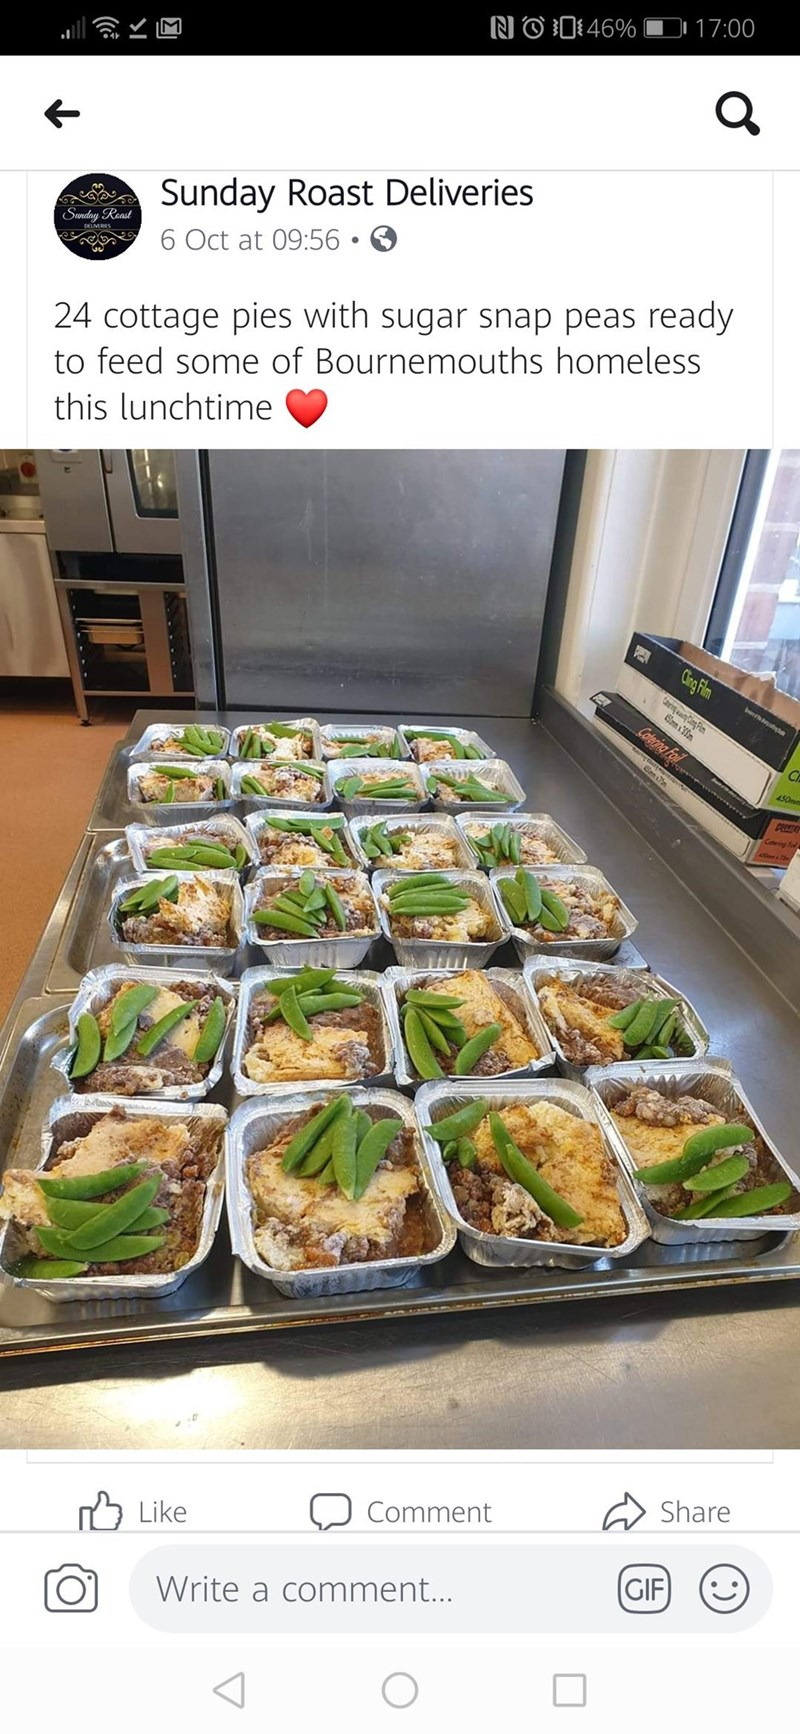 Food - 17:00 NO D46% Sunday Roast Deliveries Sunday Raast DELVERES 6 Oct at 09:56 24 cottage pies with sugar snap peas ready to feed some of Bournemouths homeless this lunchtime Cing Him m30m Catering Foi 450mm Share Comment Like GIF Write a comment...